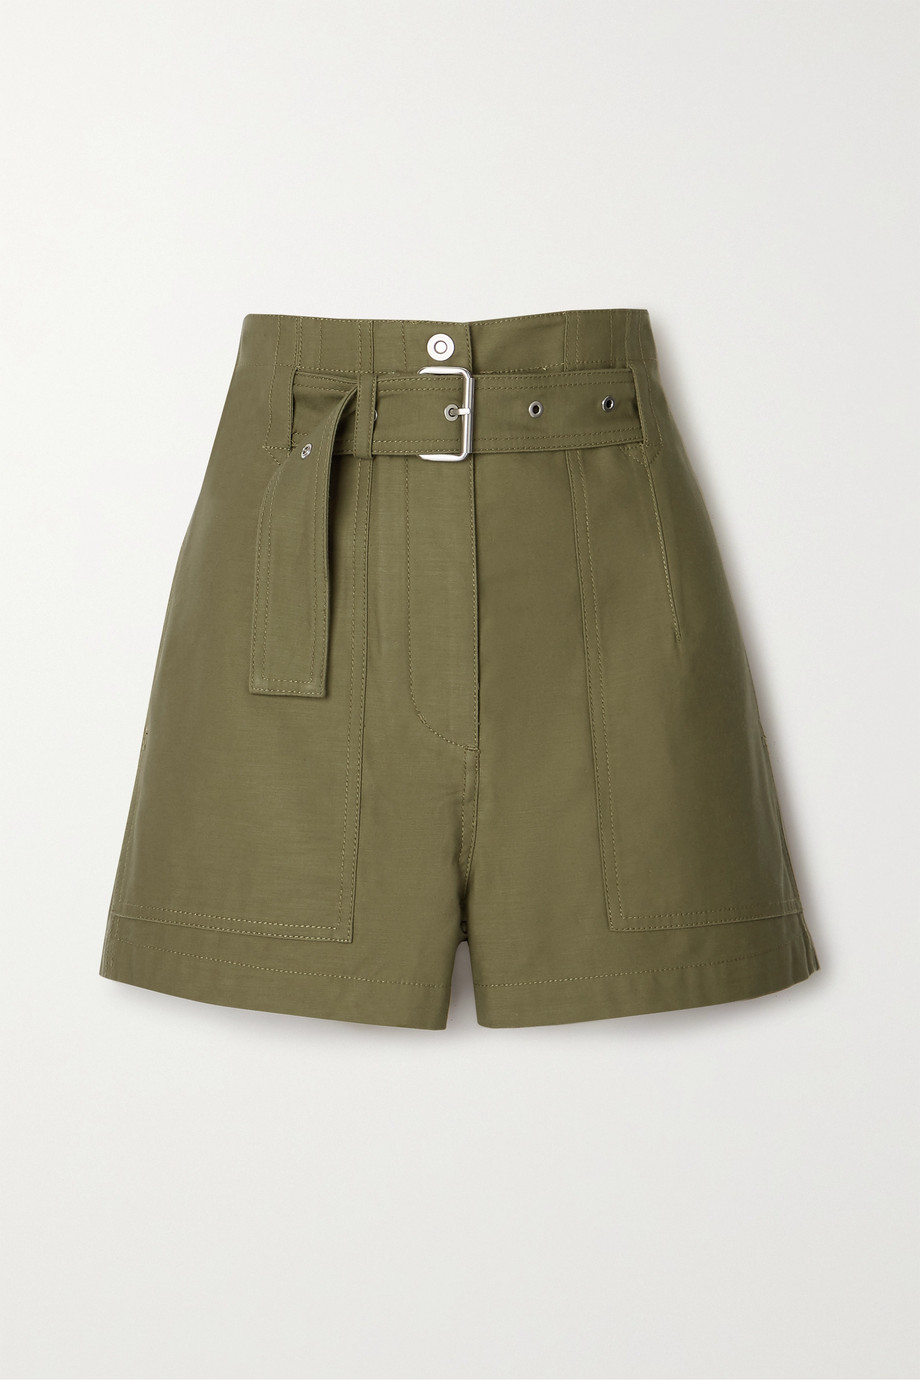 3.1 Phillip Lim Belted cotton-twill shorts